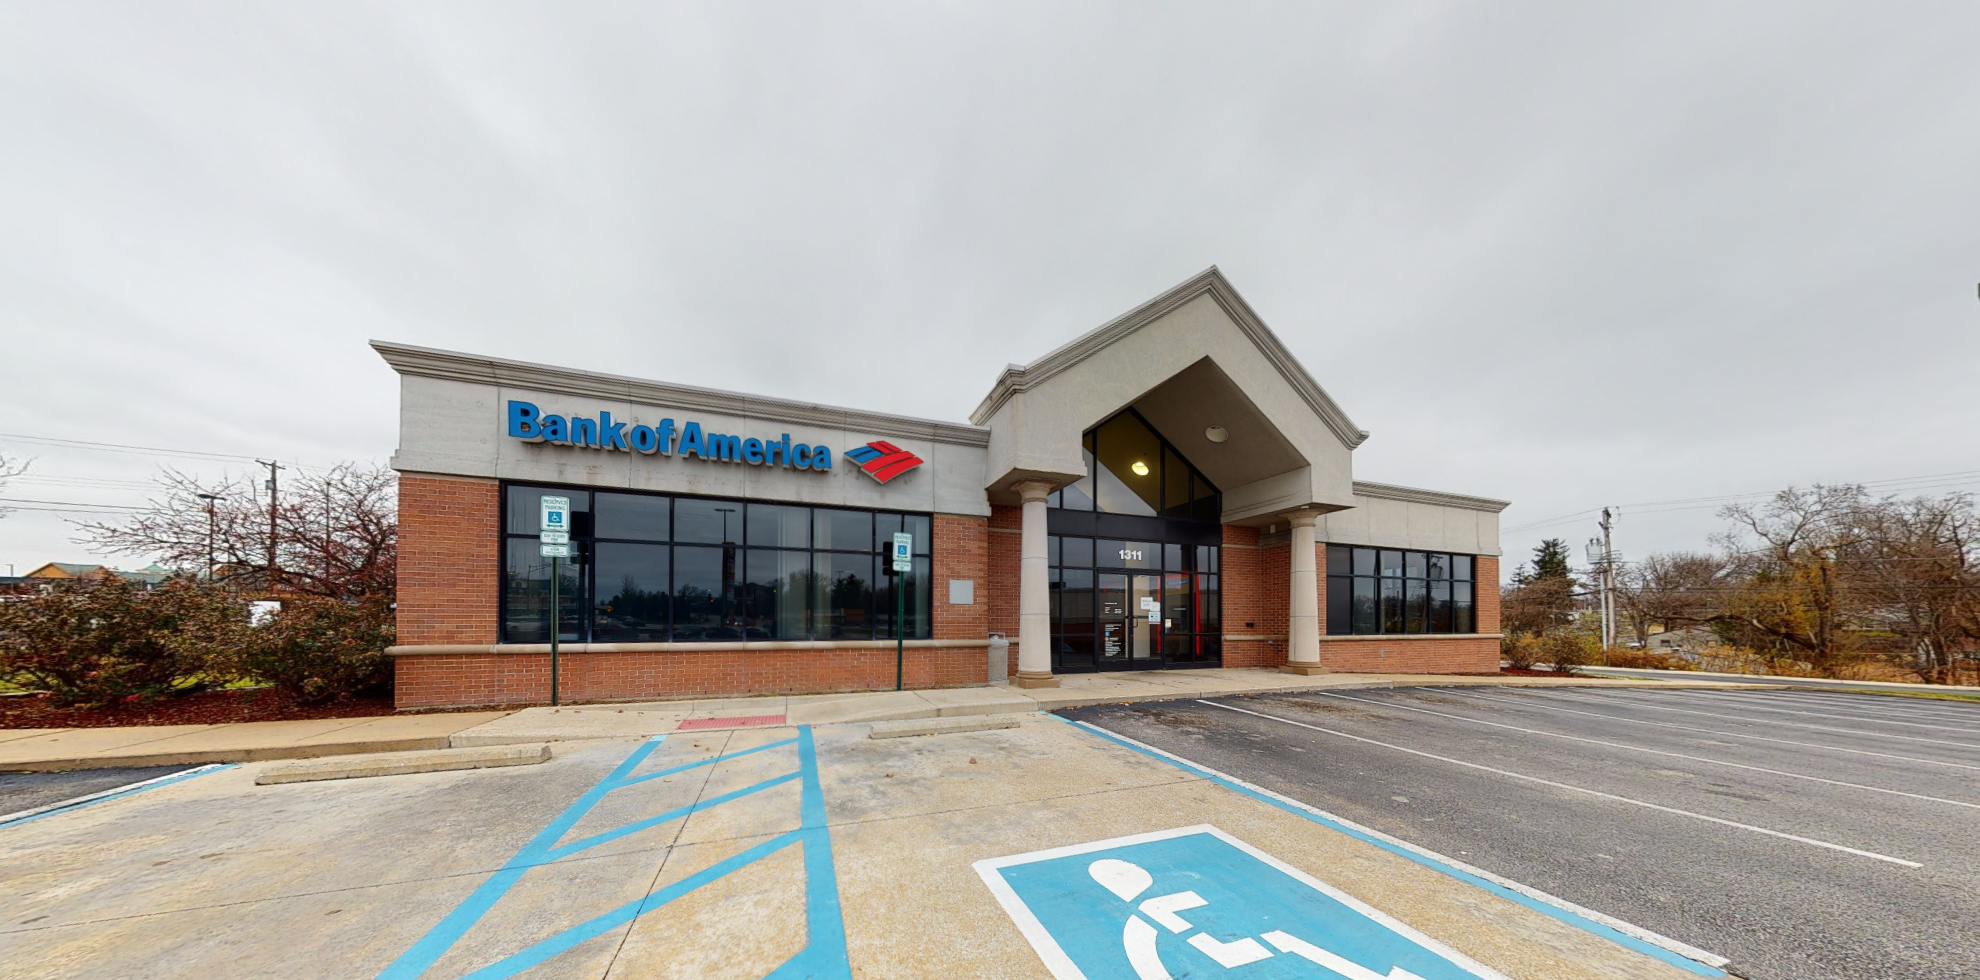 Bank of America financial center with drive-thru ATM | 1311 S 5th St, Saint Charles, MO 63301